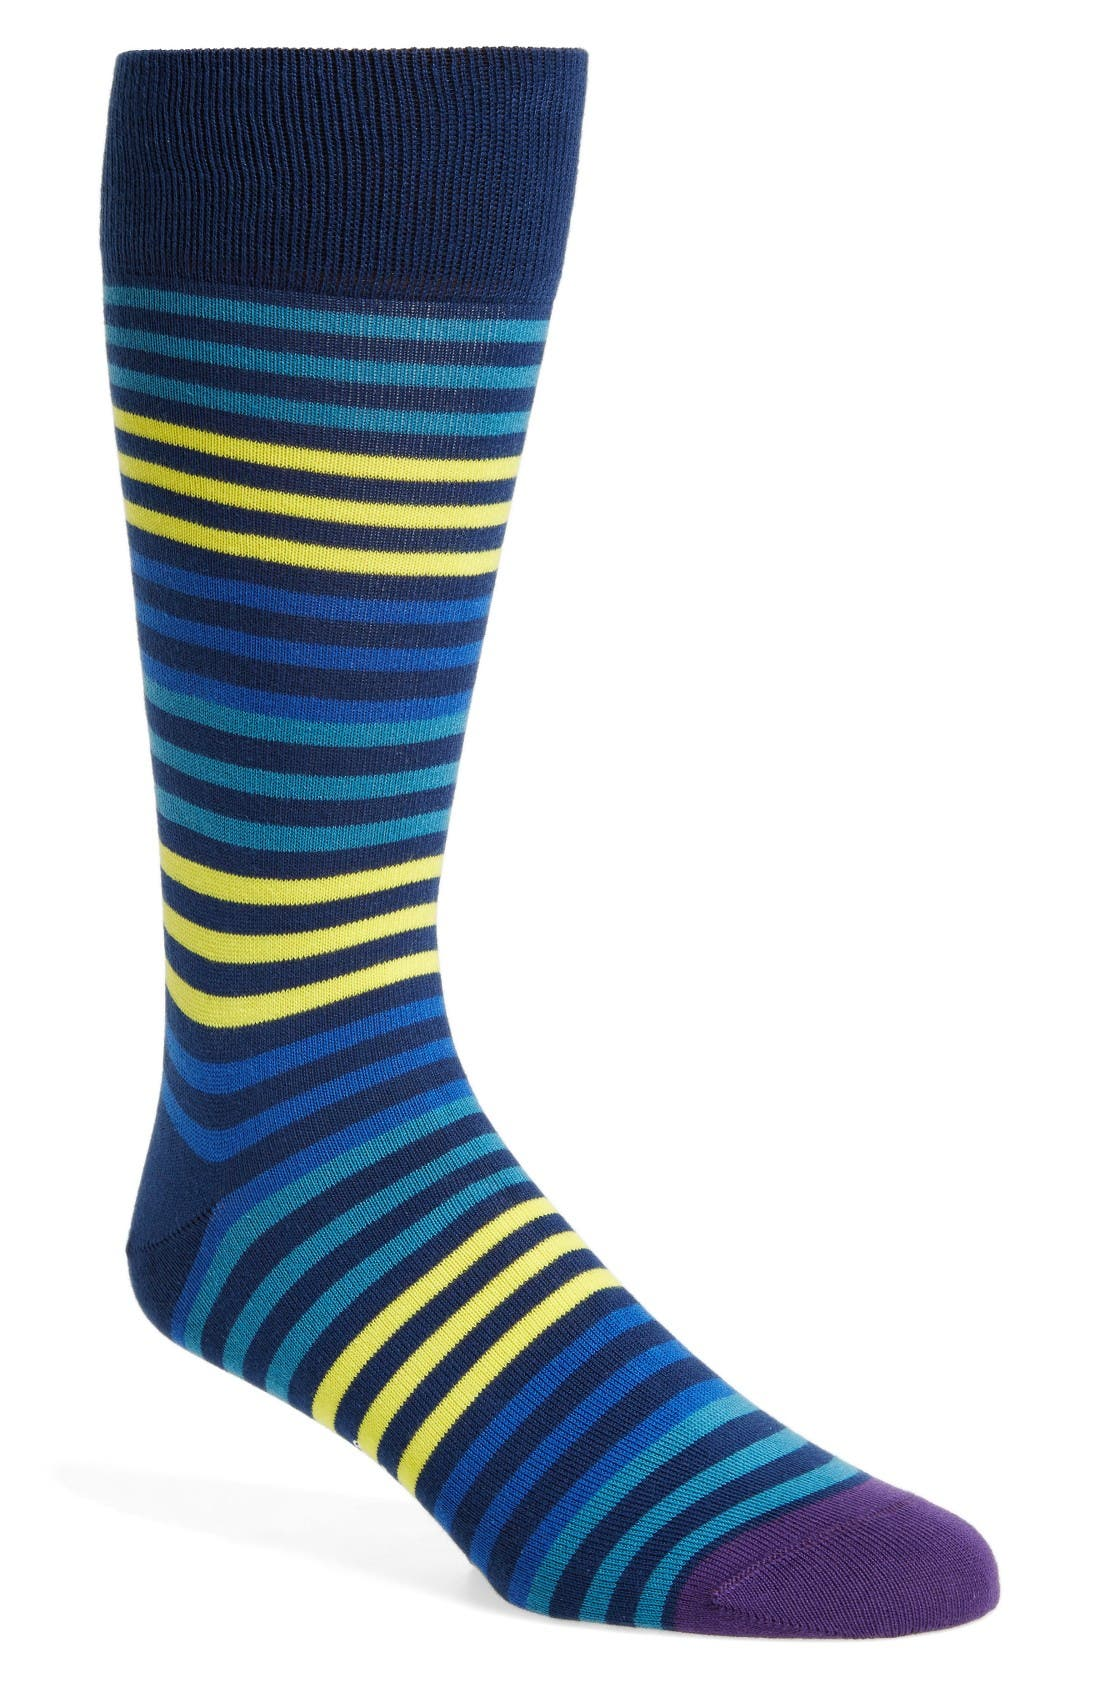 Alternate Image 1 Selected - Paul Smith Sanny Stripe Socks